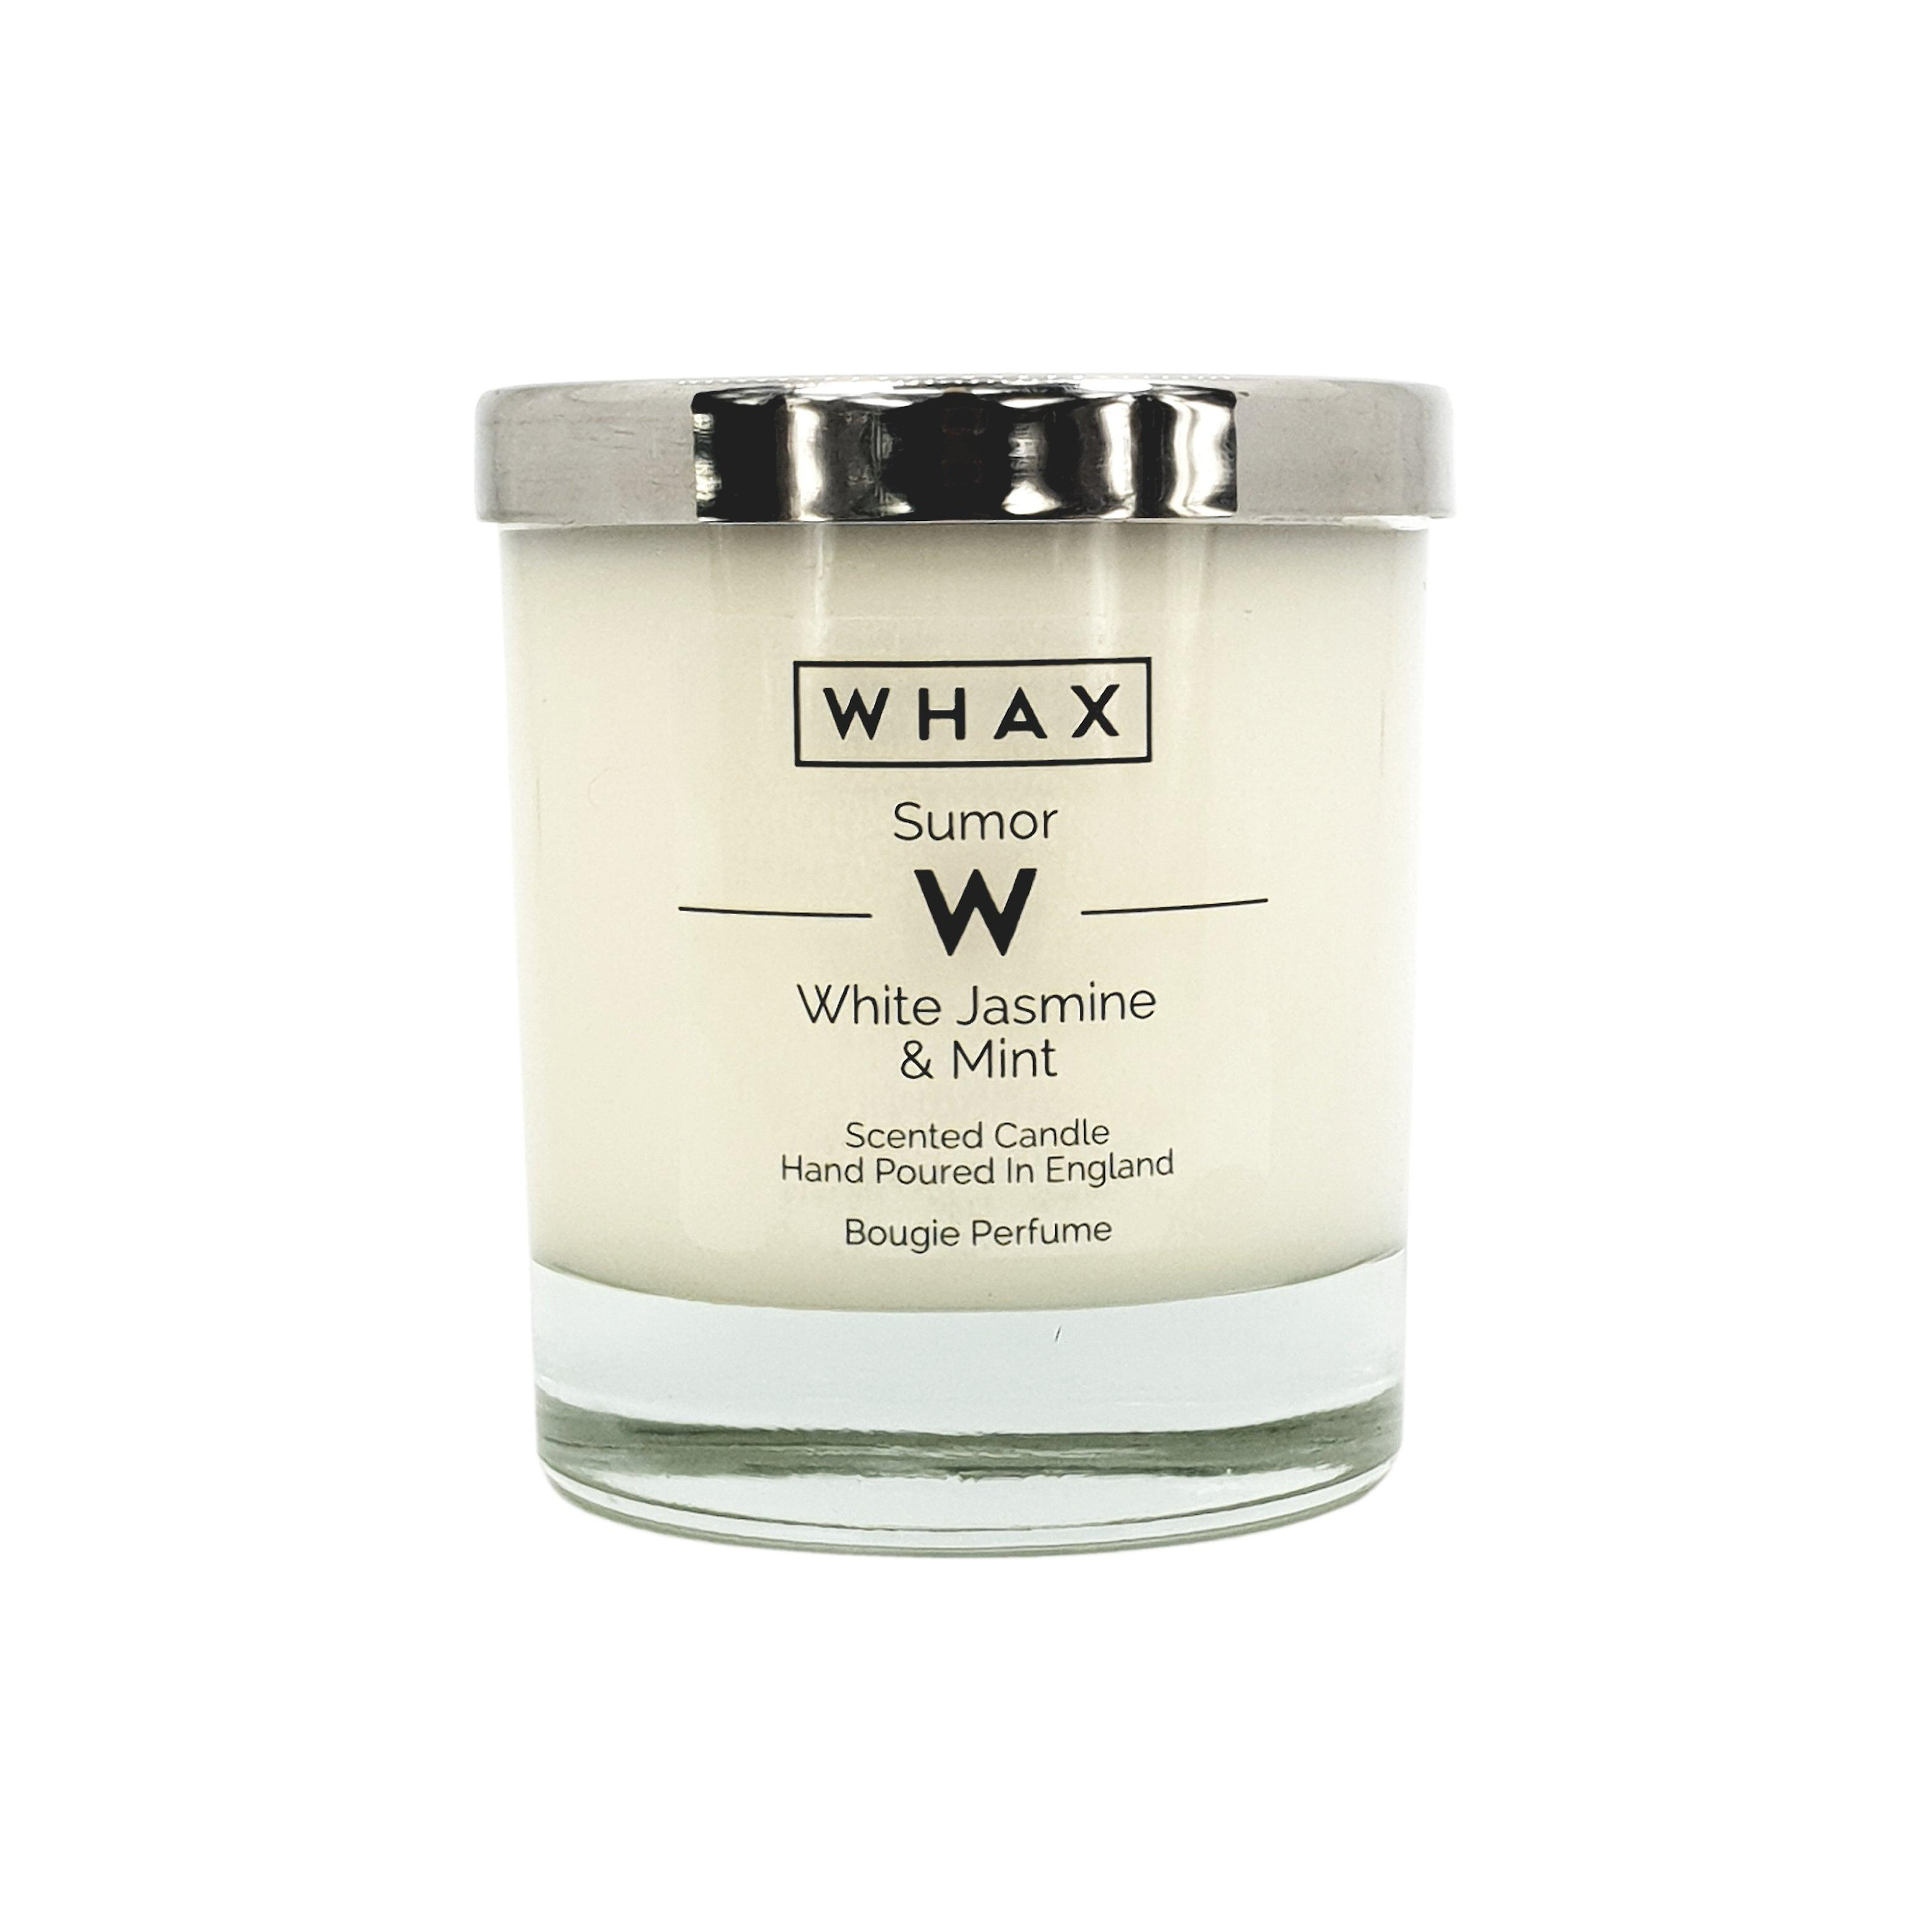 White jasmine & mint luxury scented candle